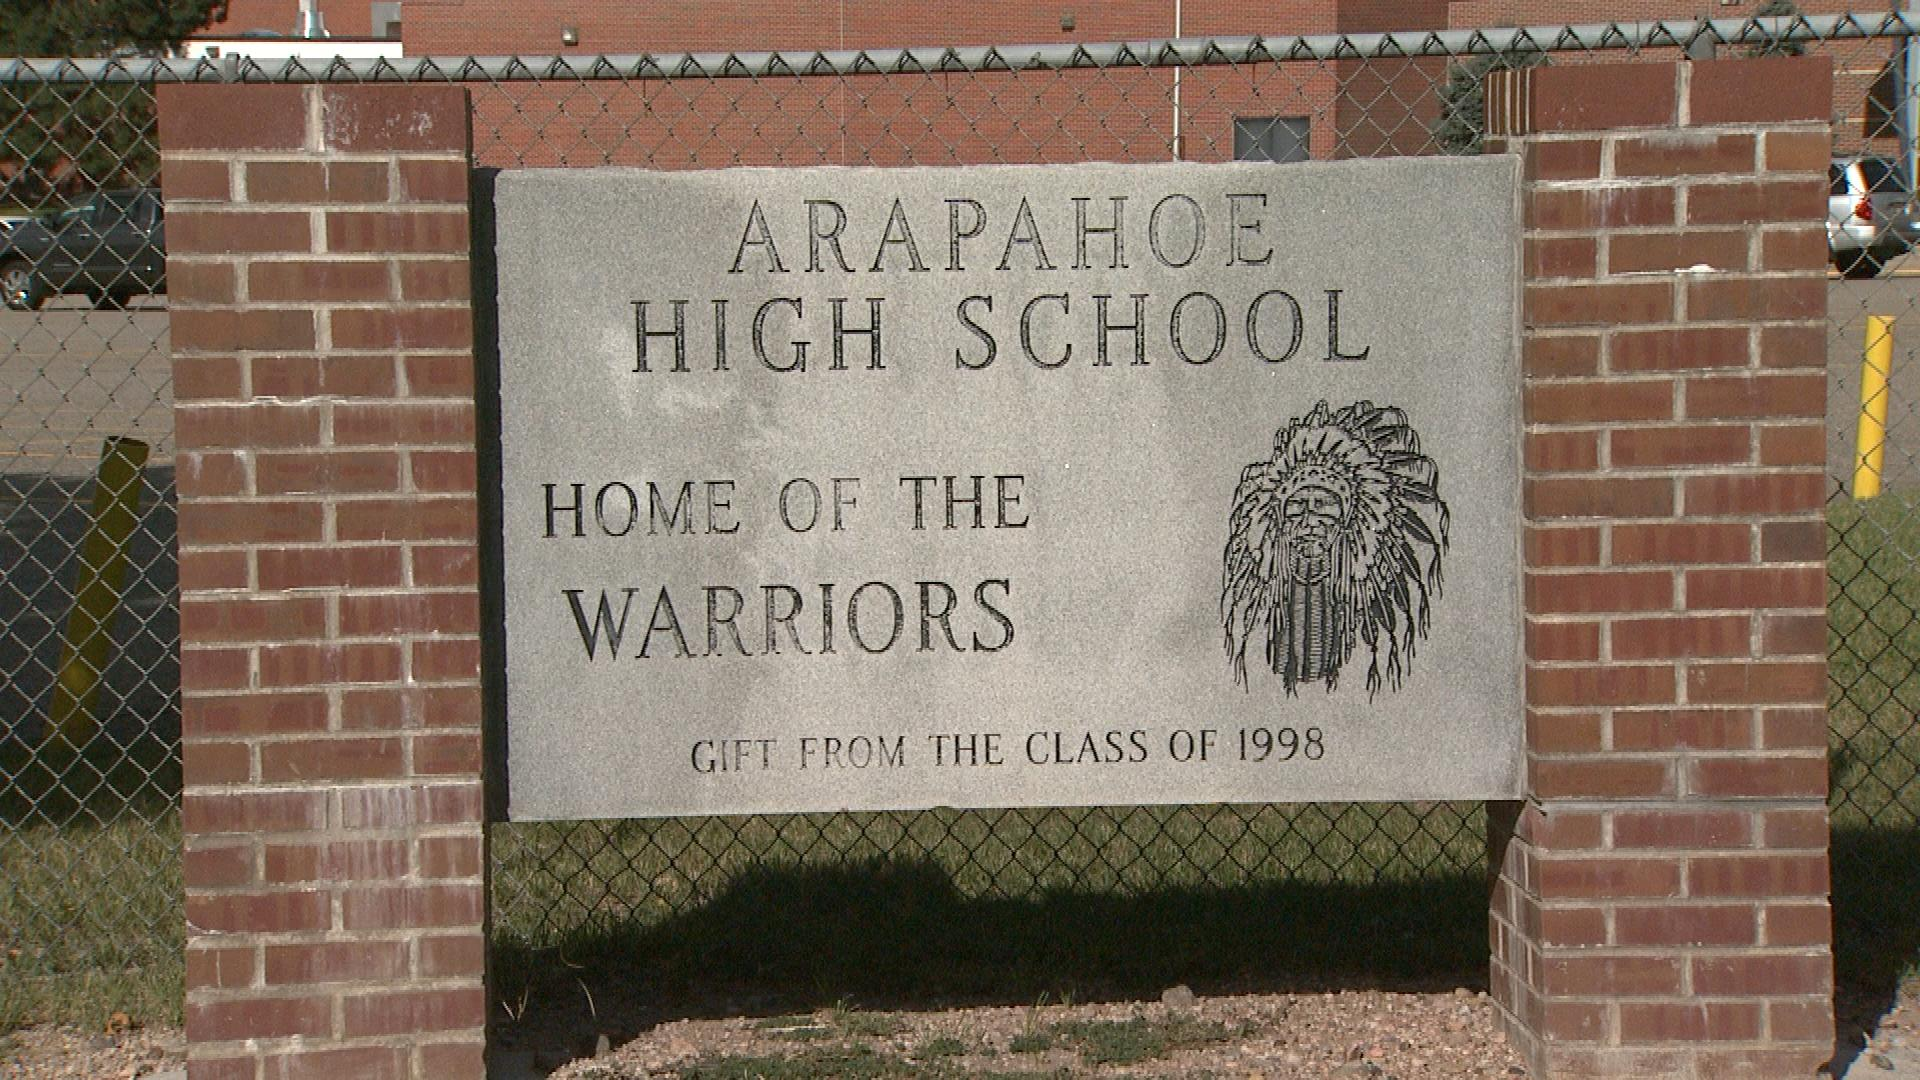 Arapahoe High School in Littleton sought permission to use Native American imagery. (credit: CBS)